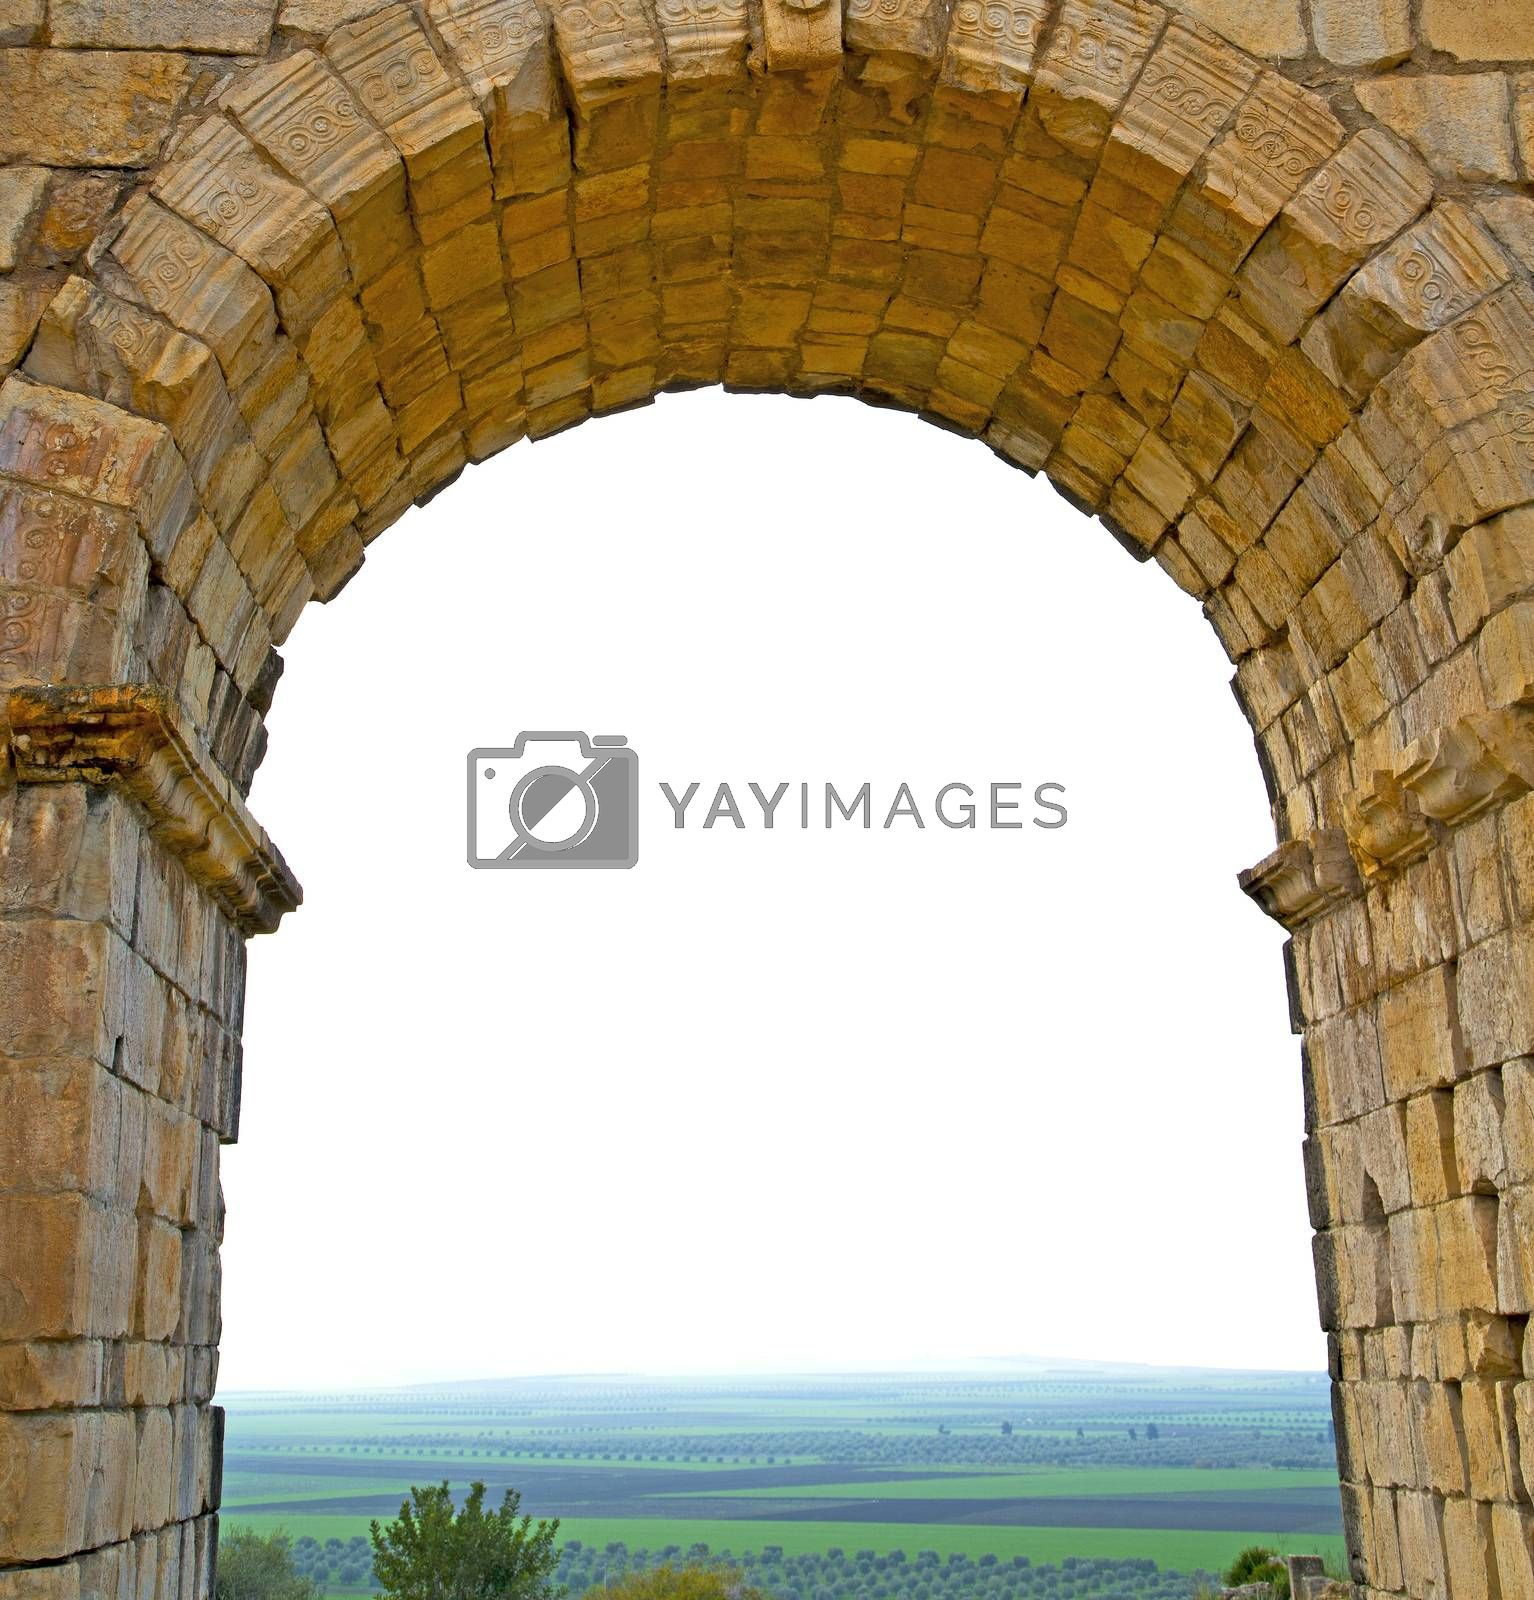 volubilis in morocco africa the old roman deteriorated monument  by lkpro